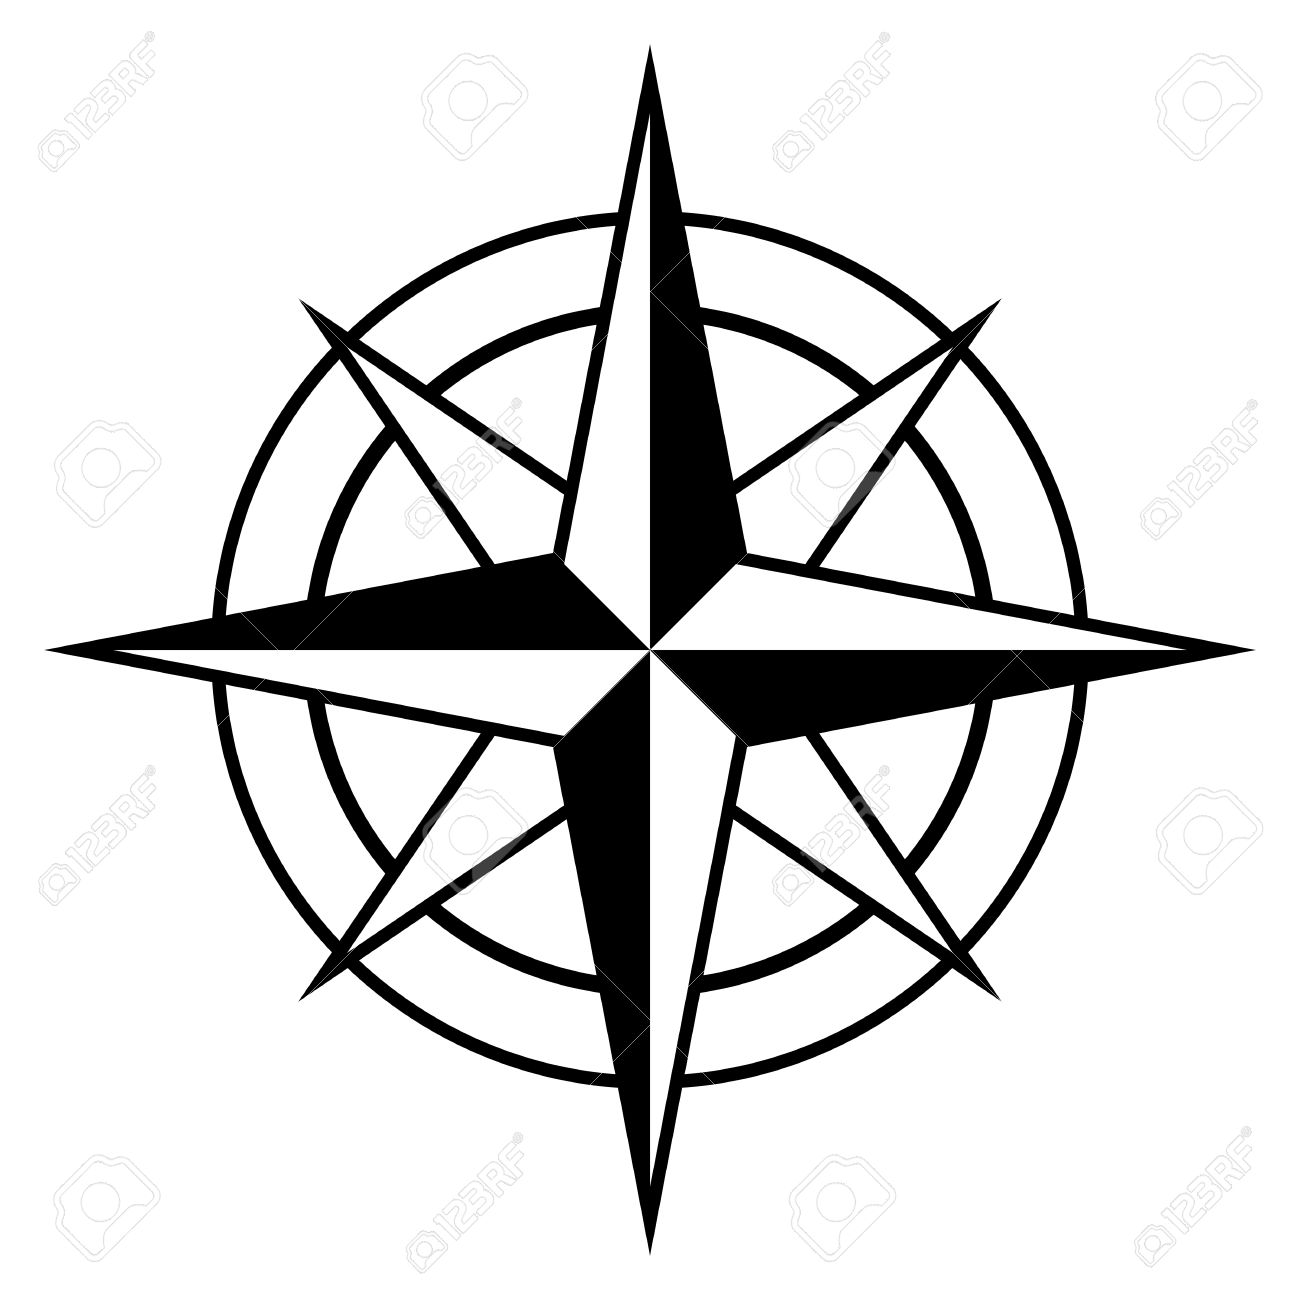 Images Compass Rose Clipart